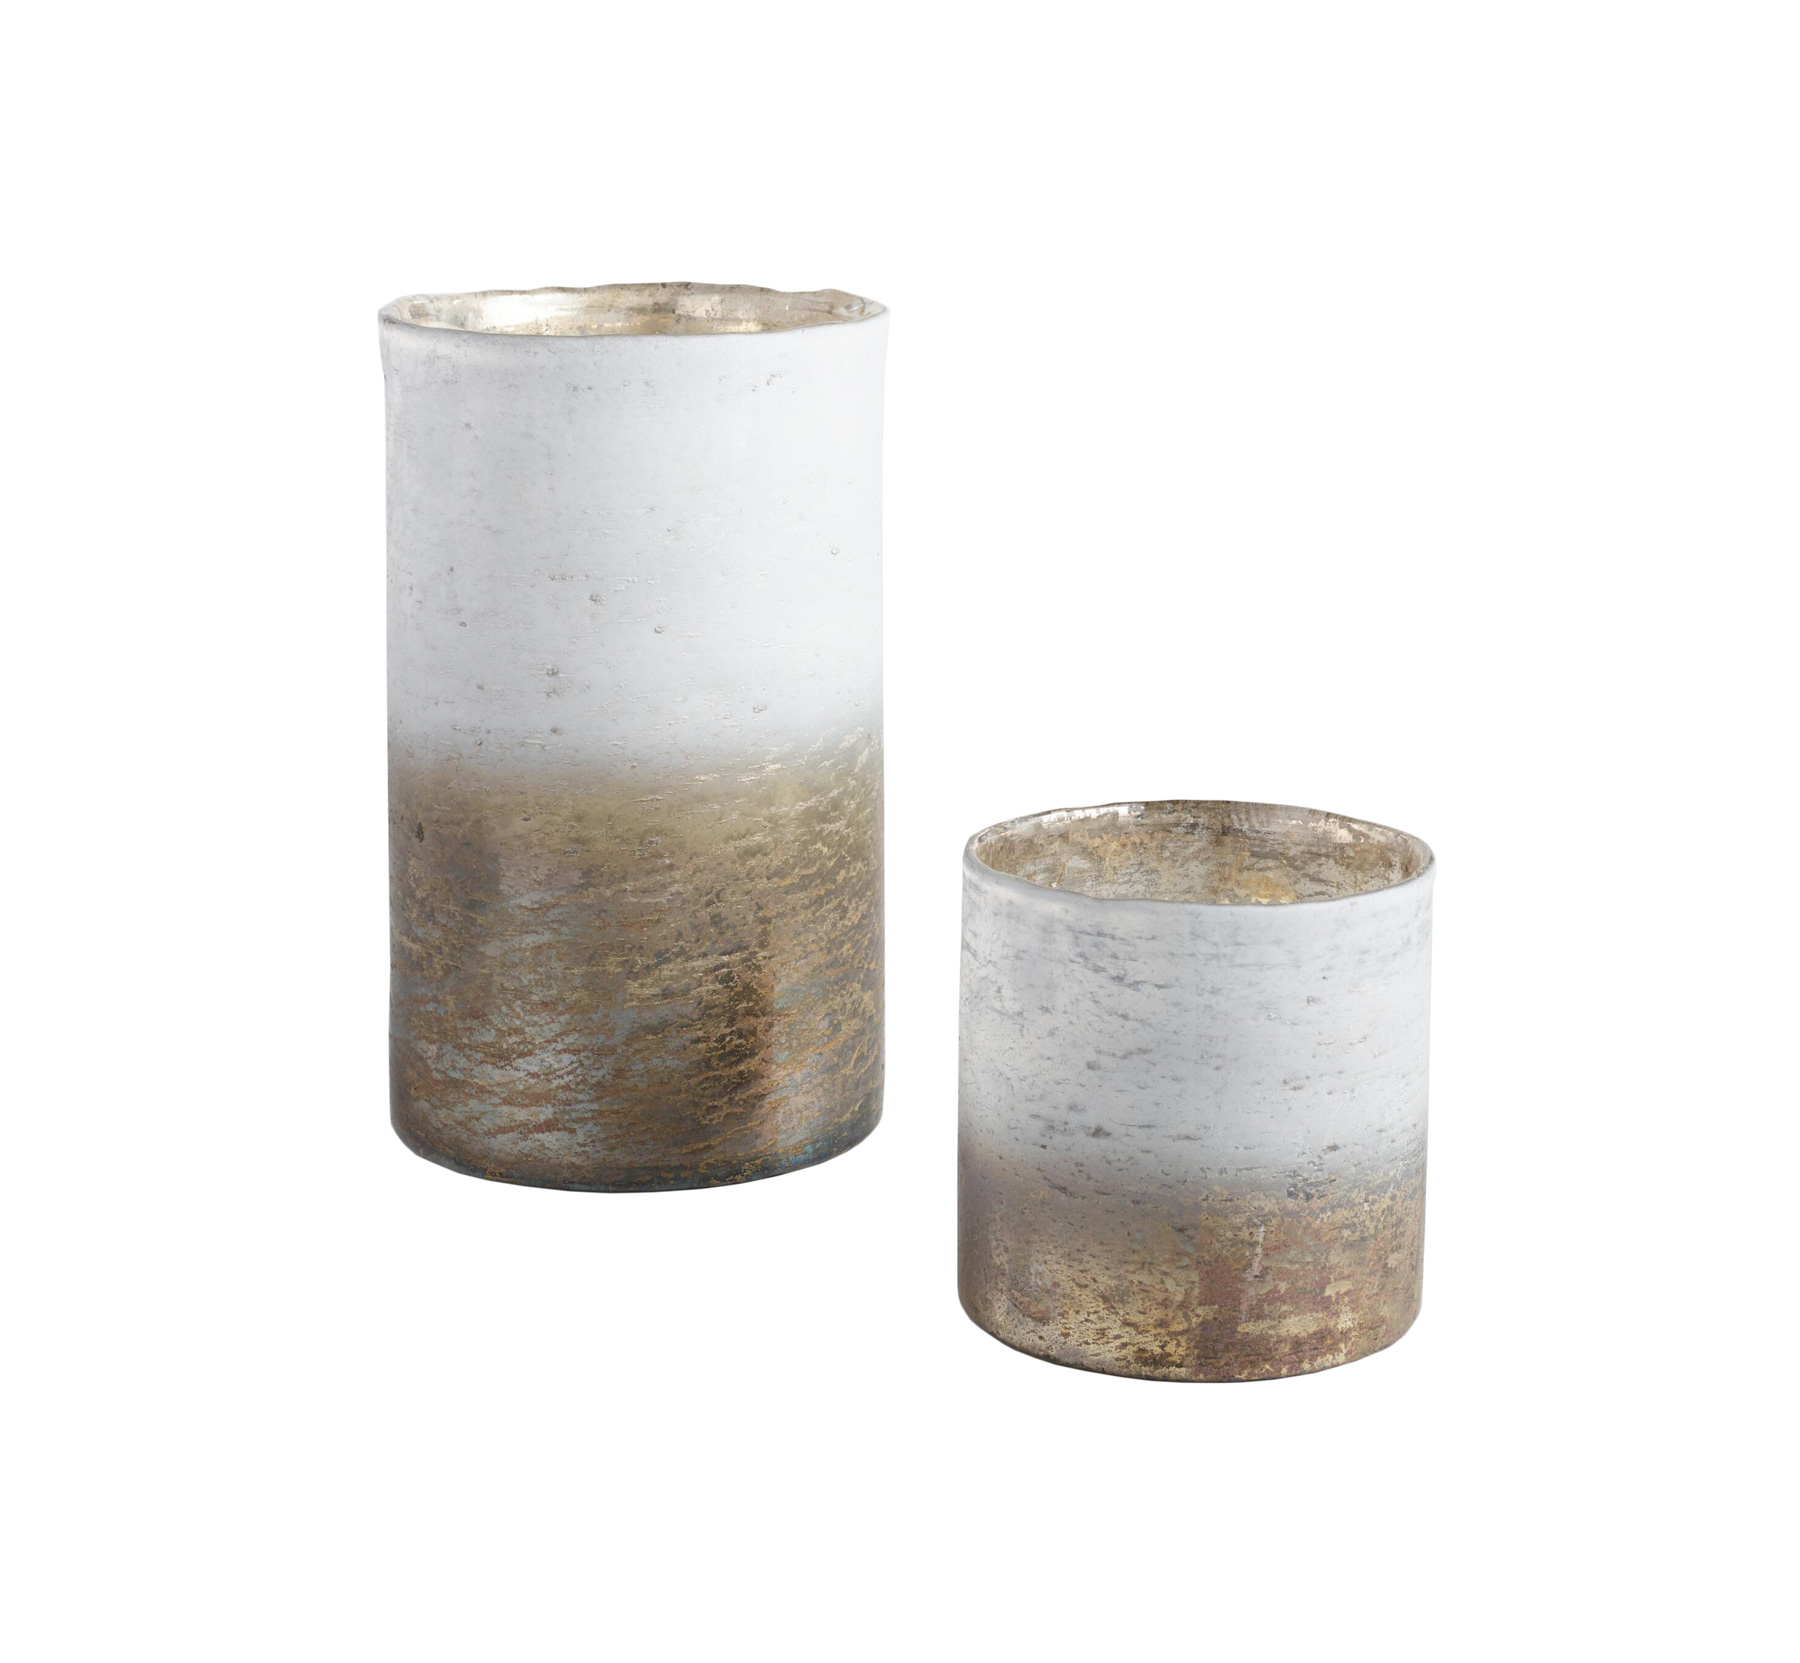 Foiled Metaliic Ombre Hurricane Candleholder